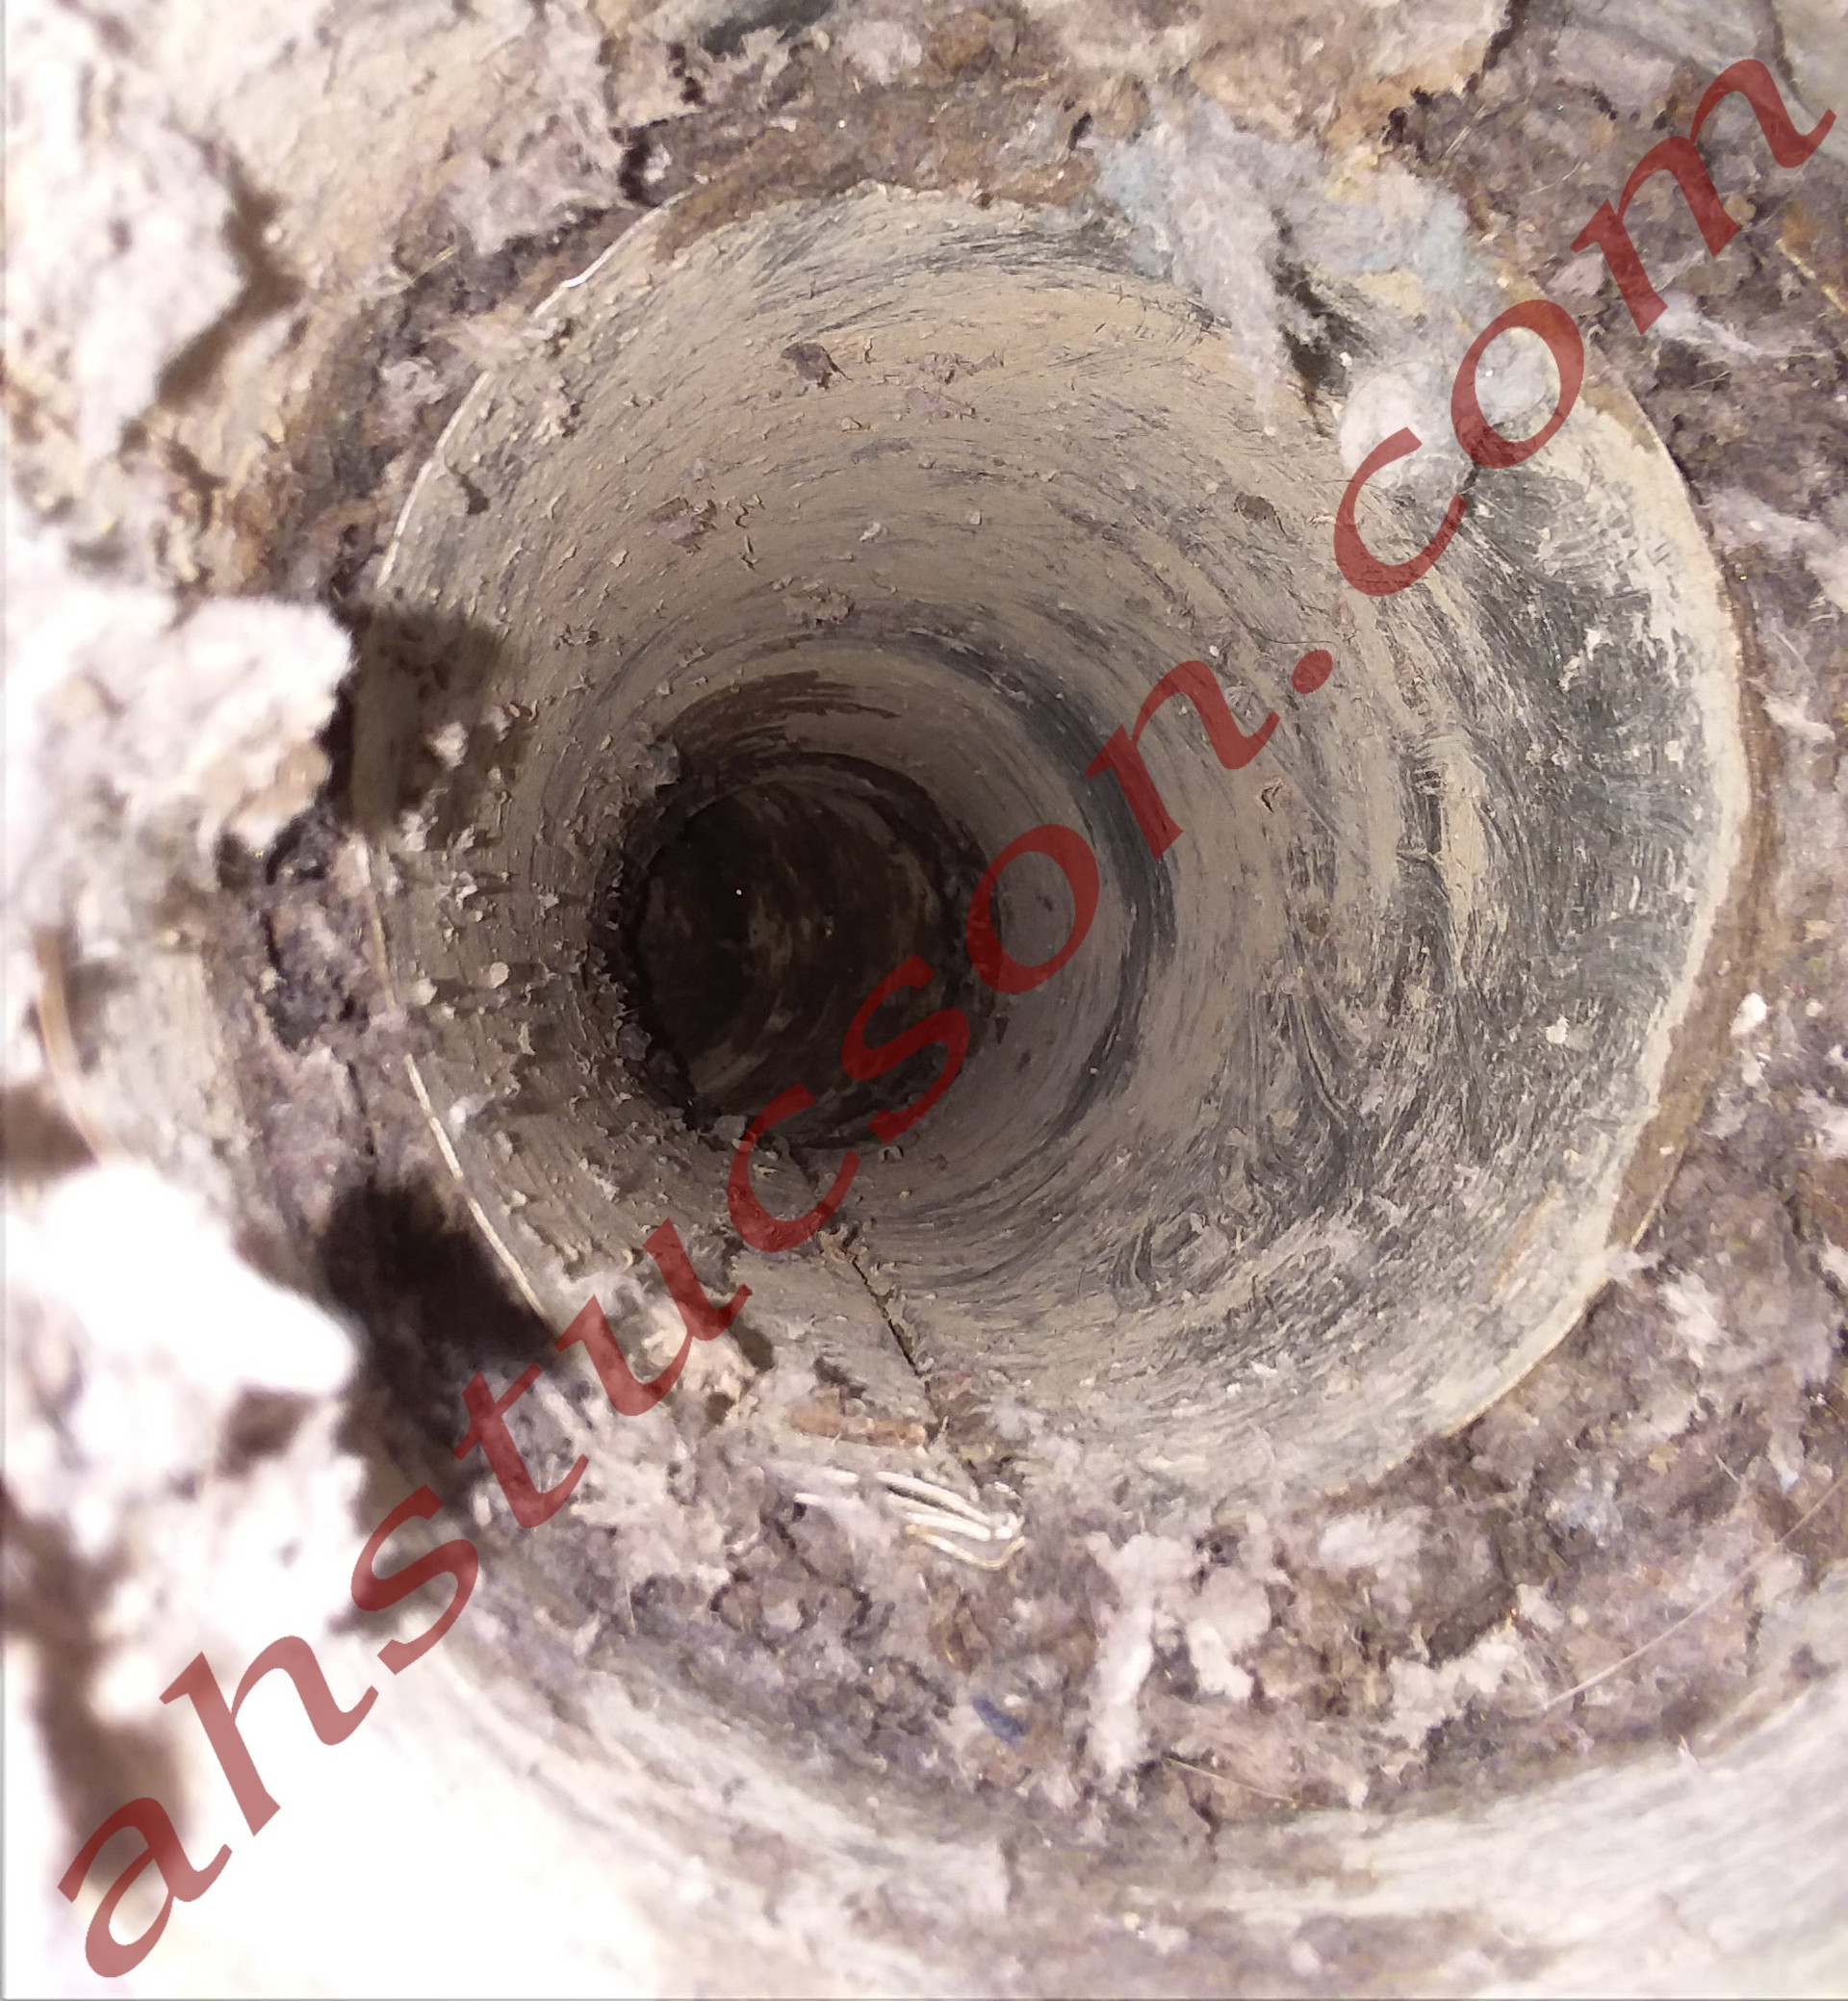 dryer-vent-cleaning-20180214_124905.jpg